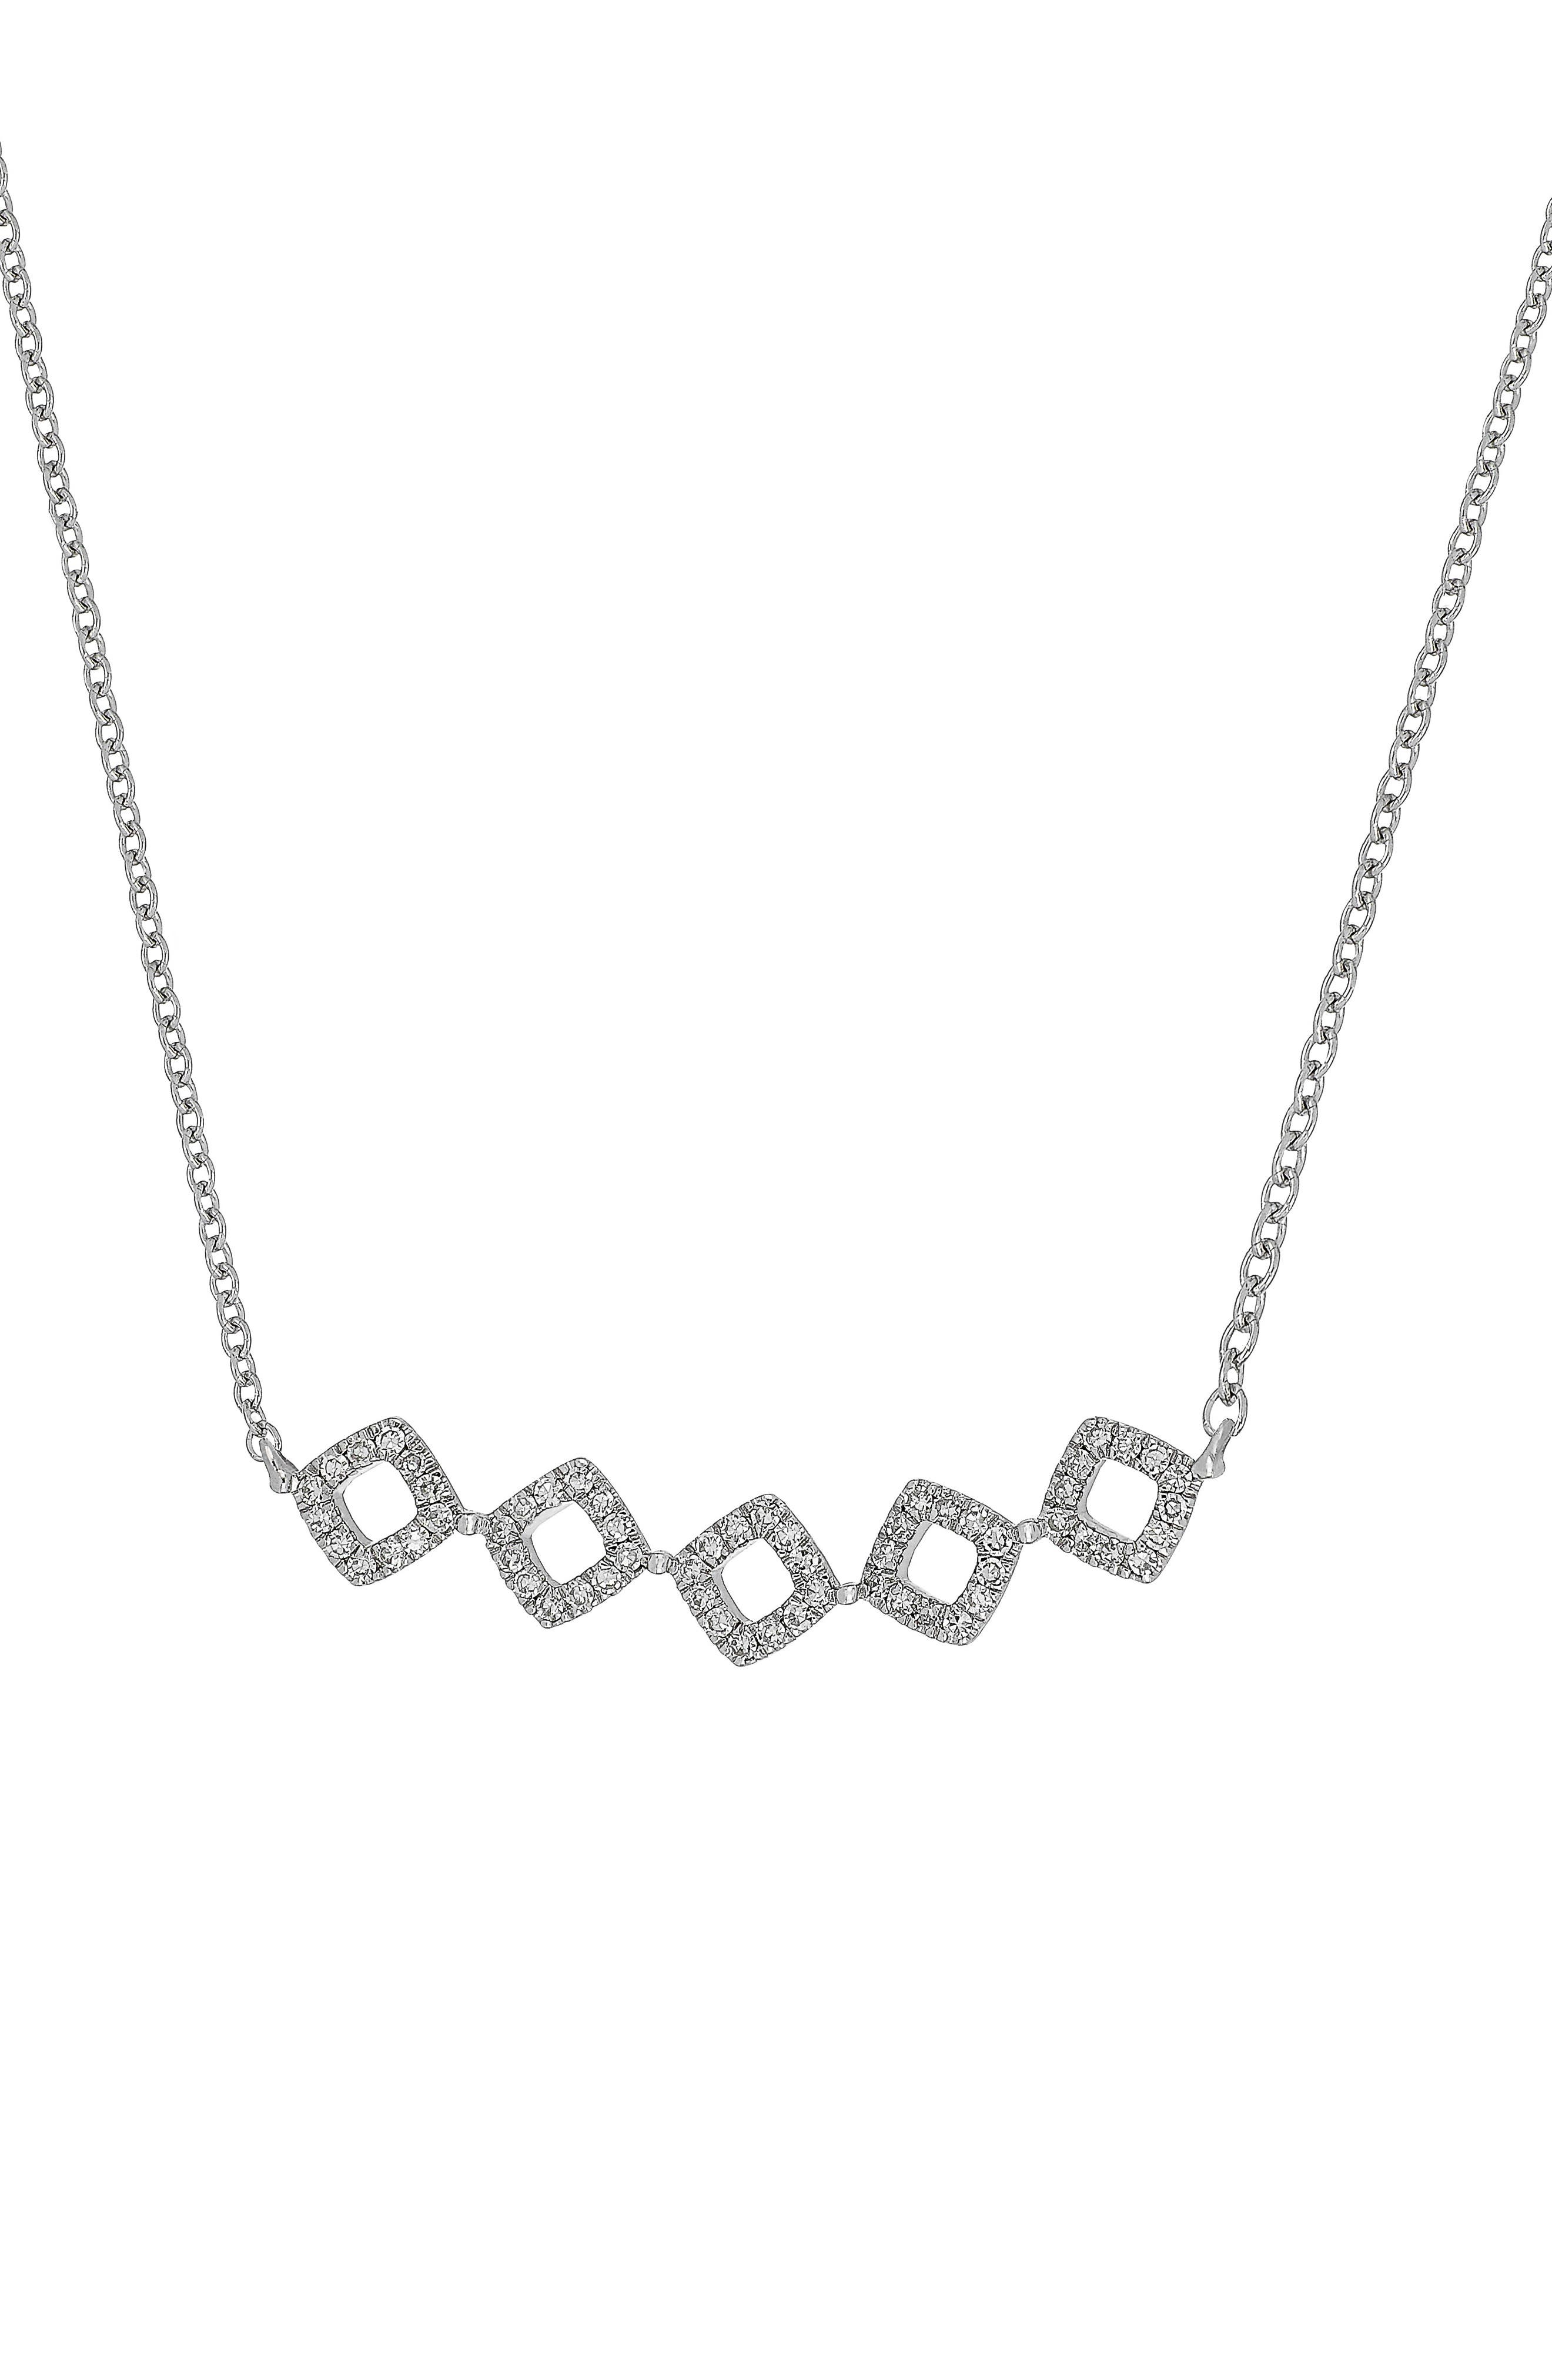 Carrière Diamond Shape Frontal Necklace,                             Main thumbnail 1, color,                             Silver/ Diamond